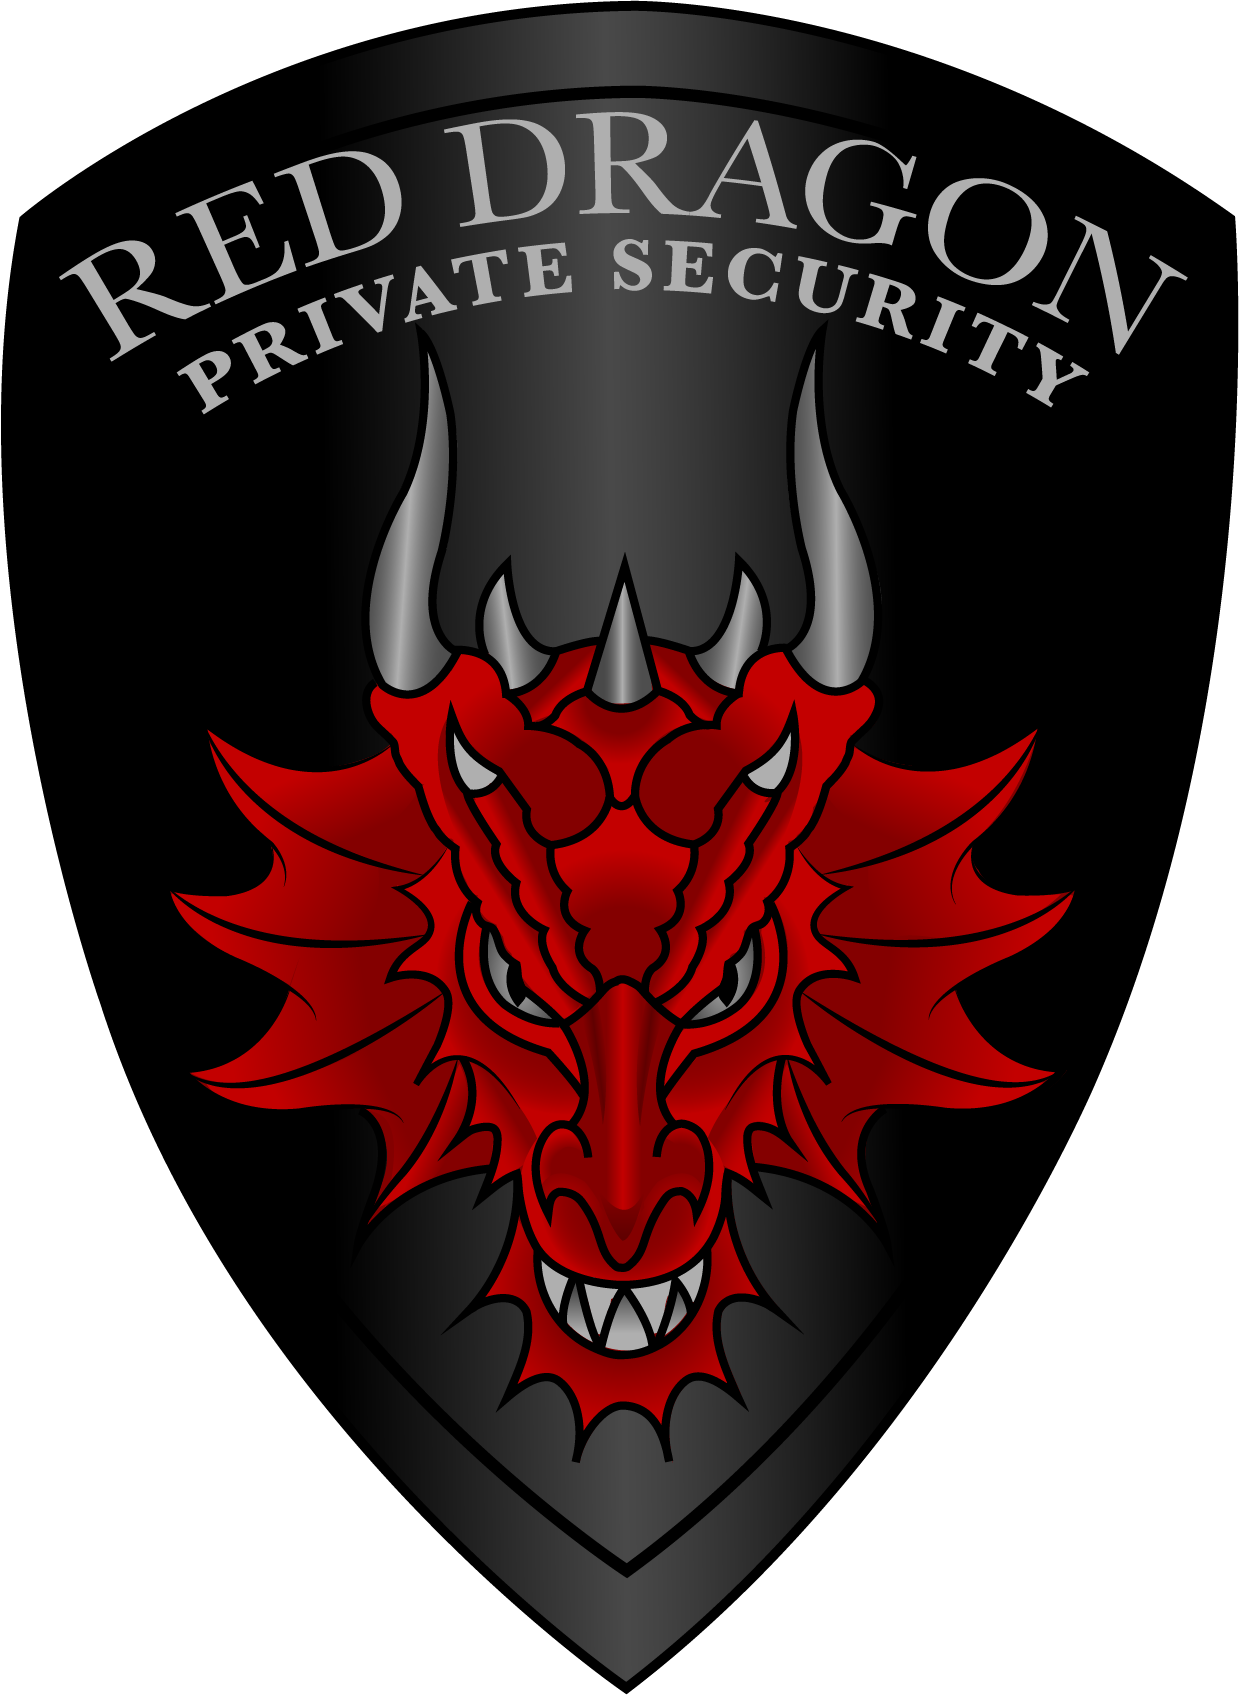 security, Private Security Services